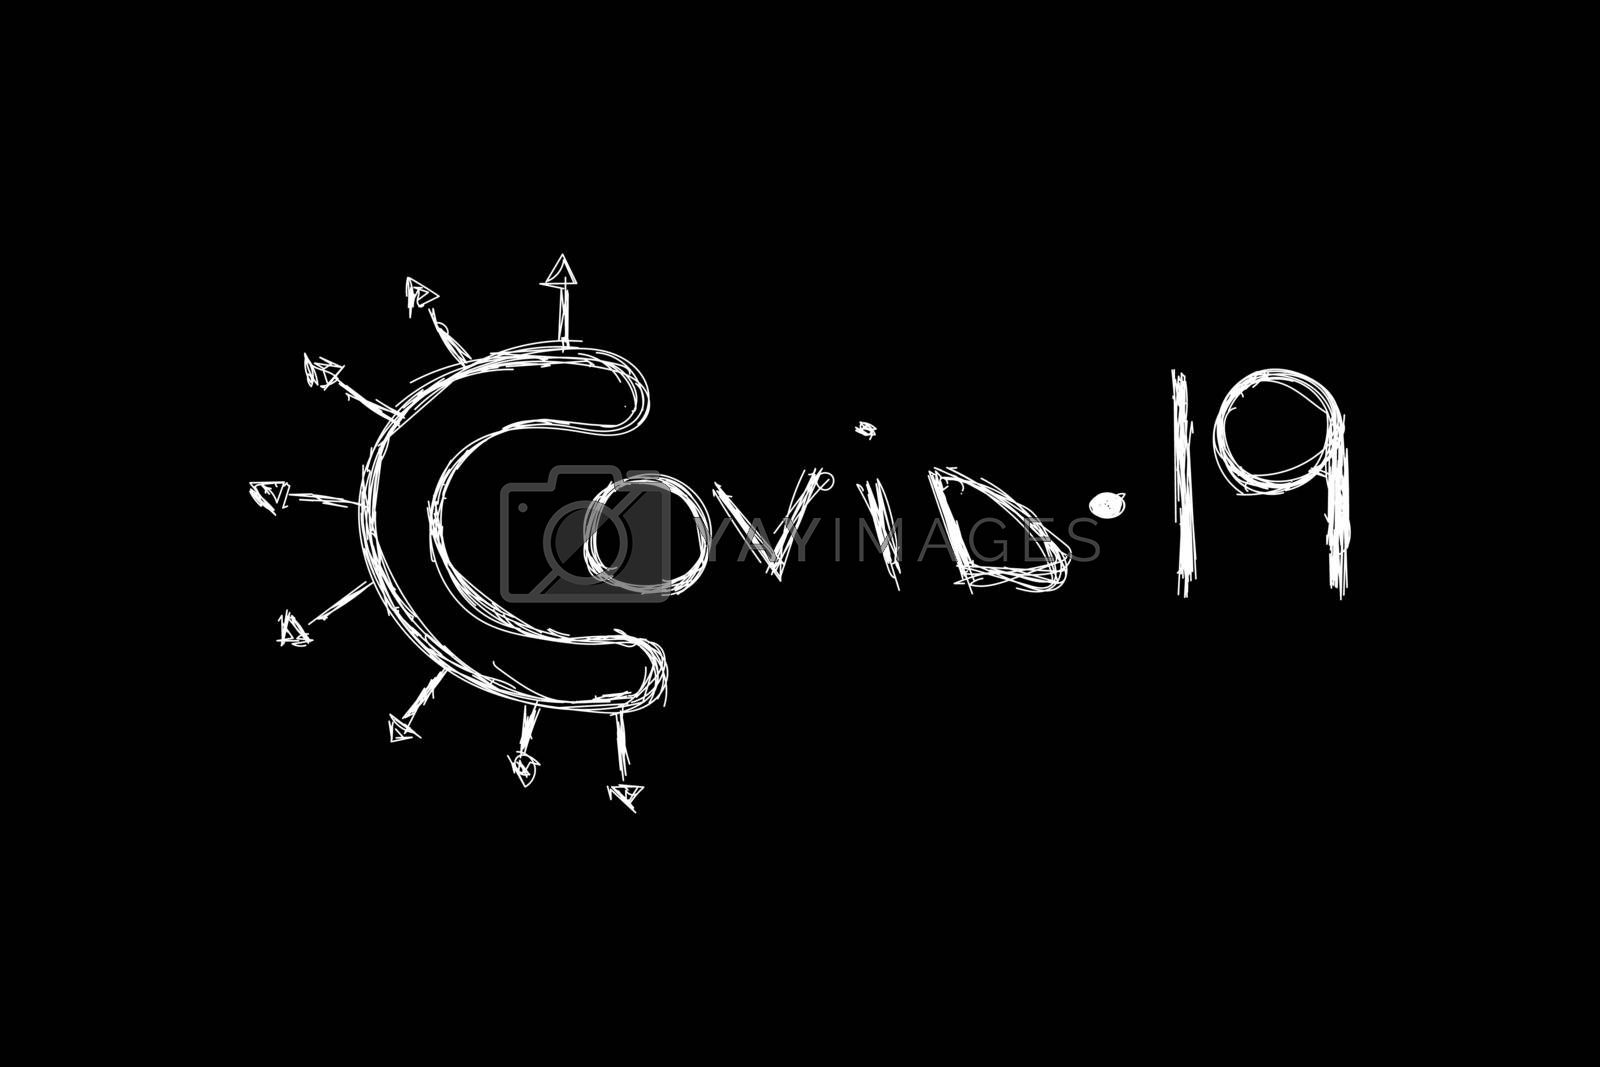 Covid 19 handdrawn logo. Coronavirus pandemic symbol inscription. EPS10 vector.